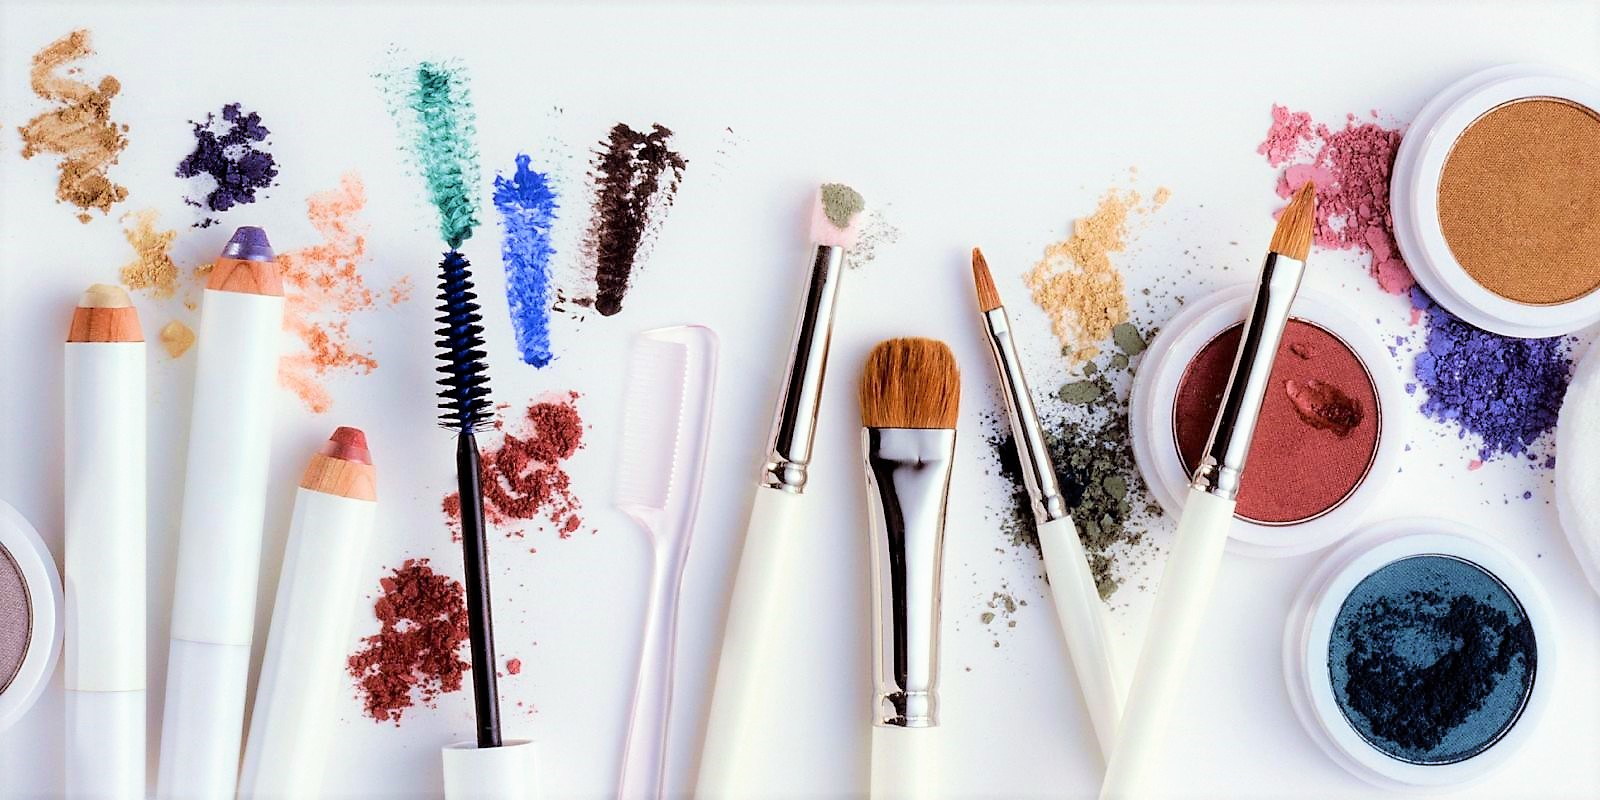 Is It Possible to Save Money on Beauty Products?